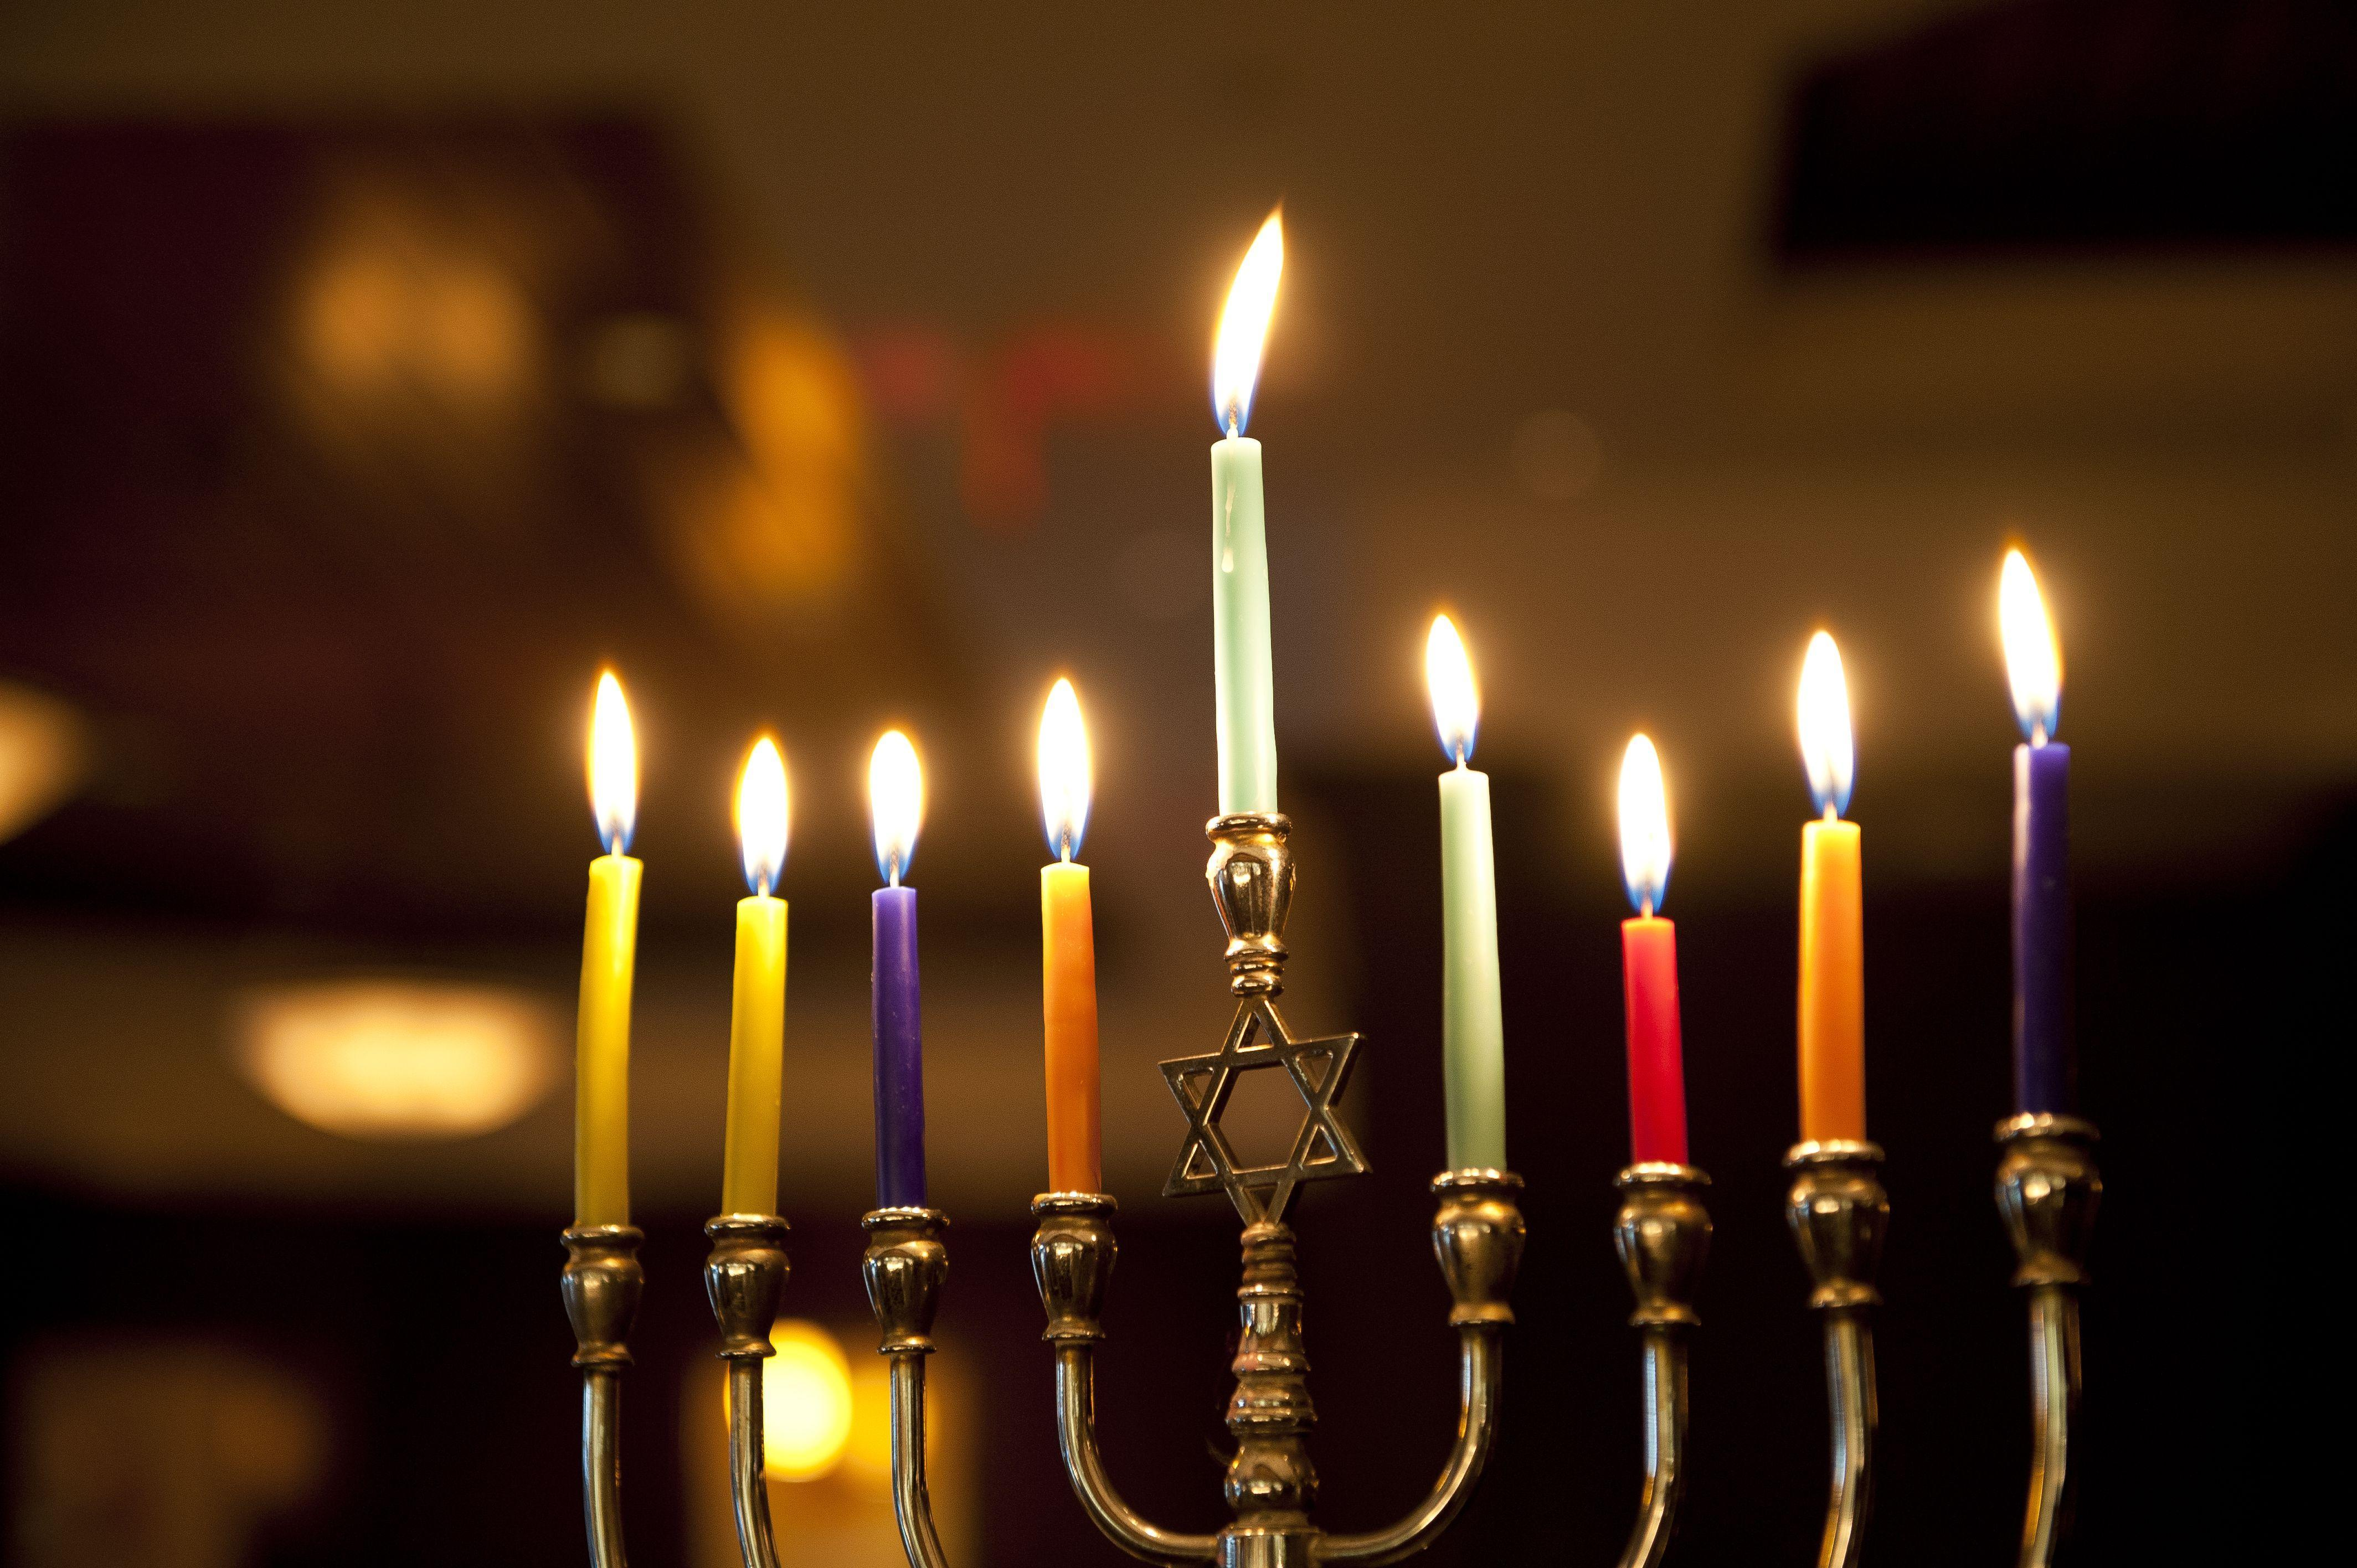 20 Hanukkah HD Wallpapers | Backgrounds - Wallpaper Abyss